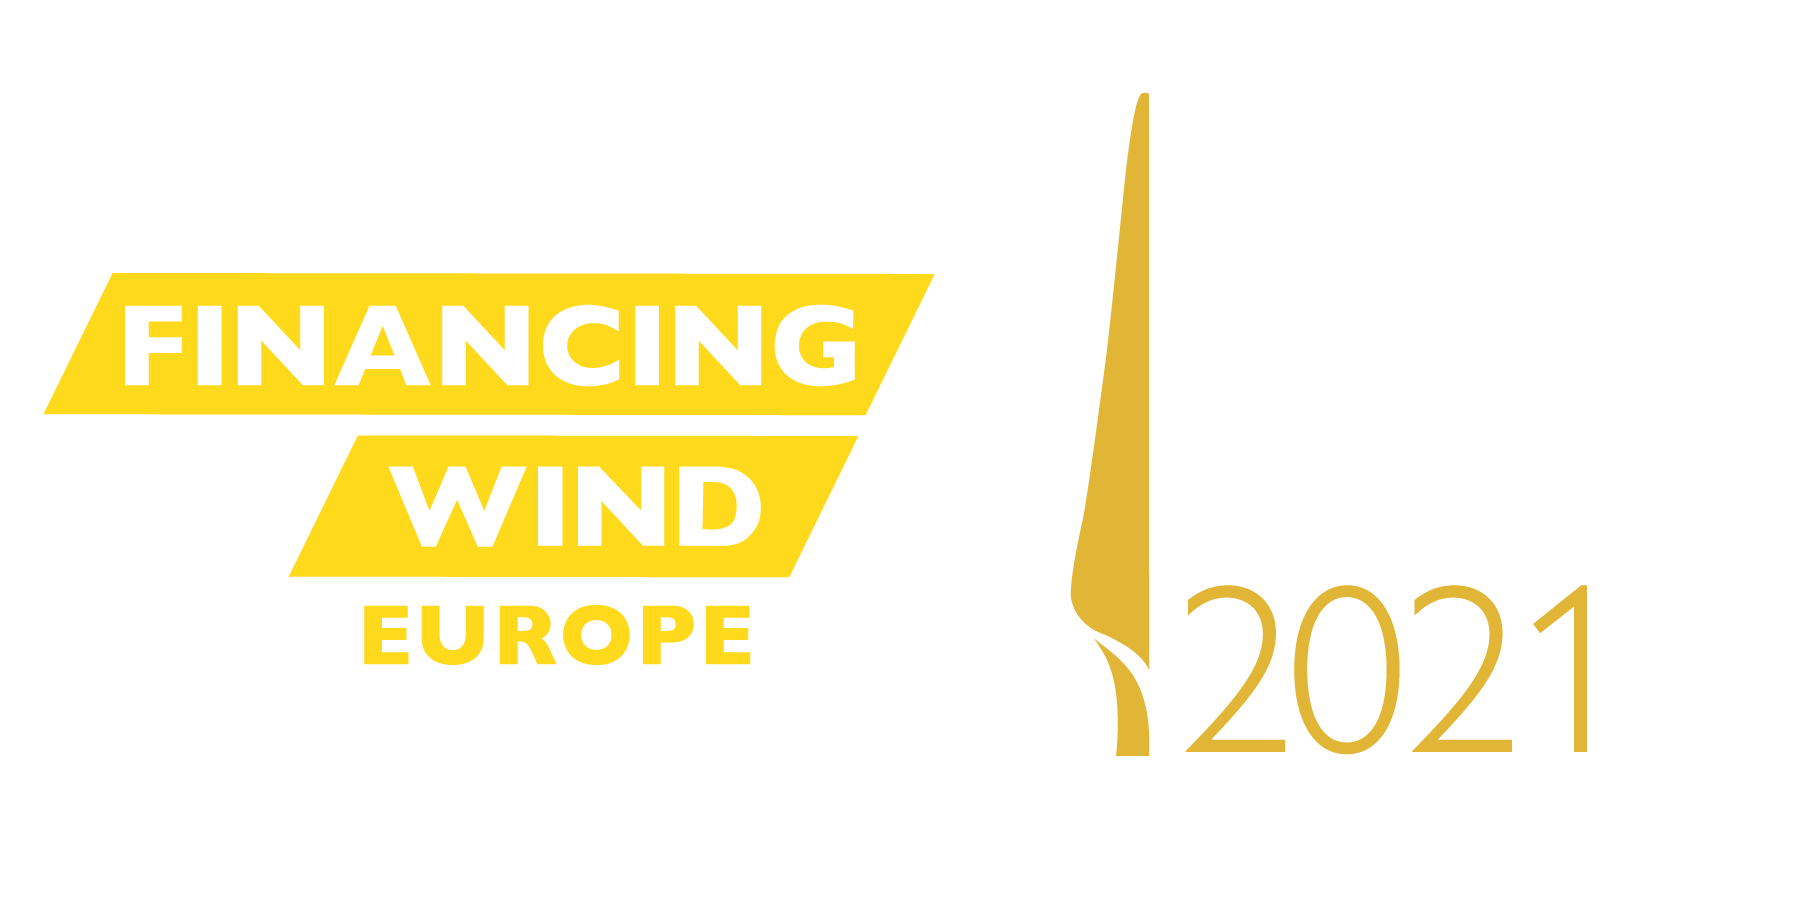 Financing Wind Europe and the Wind Investment Awards 2021